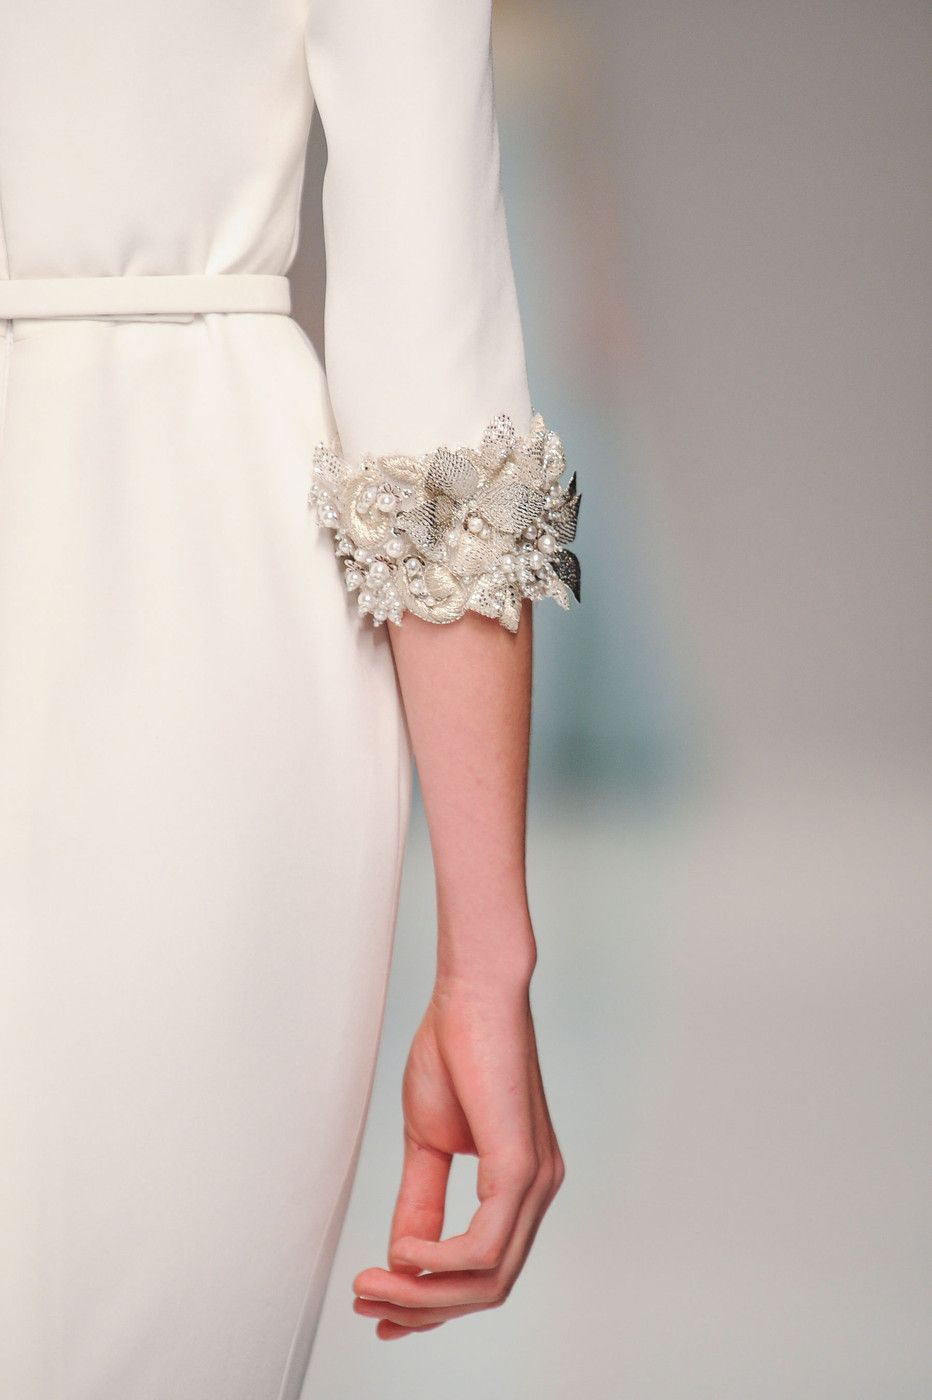 Georges Hobeika at Couture Spring 2015 Georges Hobeika at Couture Spring 2015 - Details Runway Photos #runwaydetails